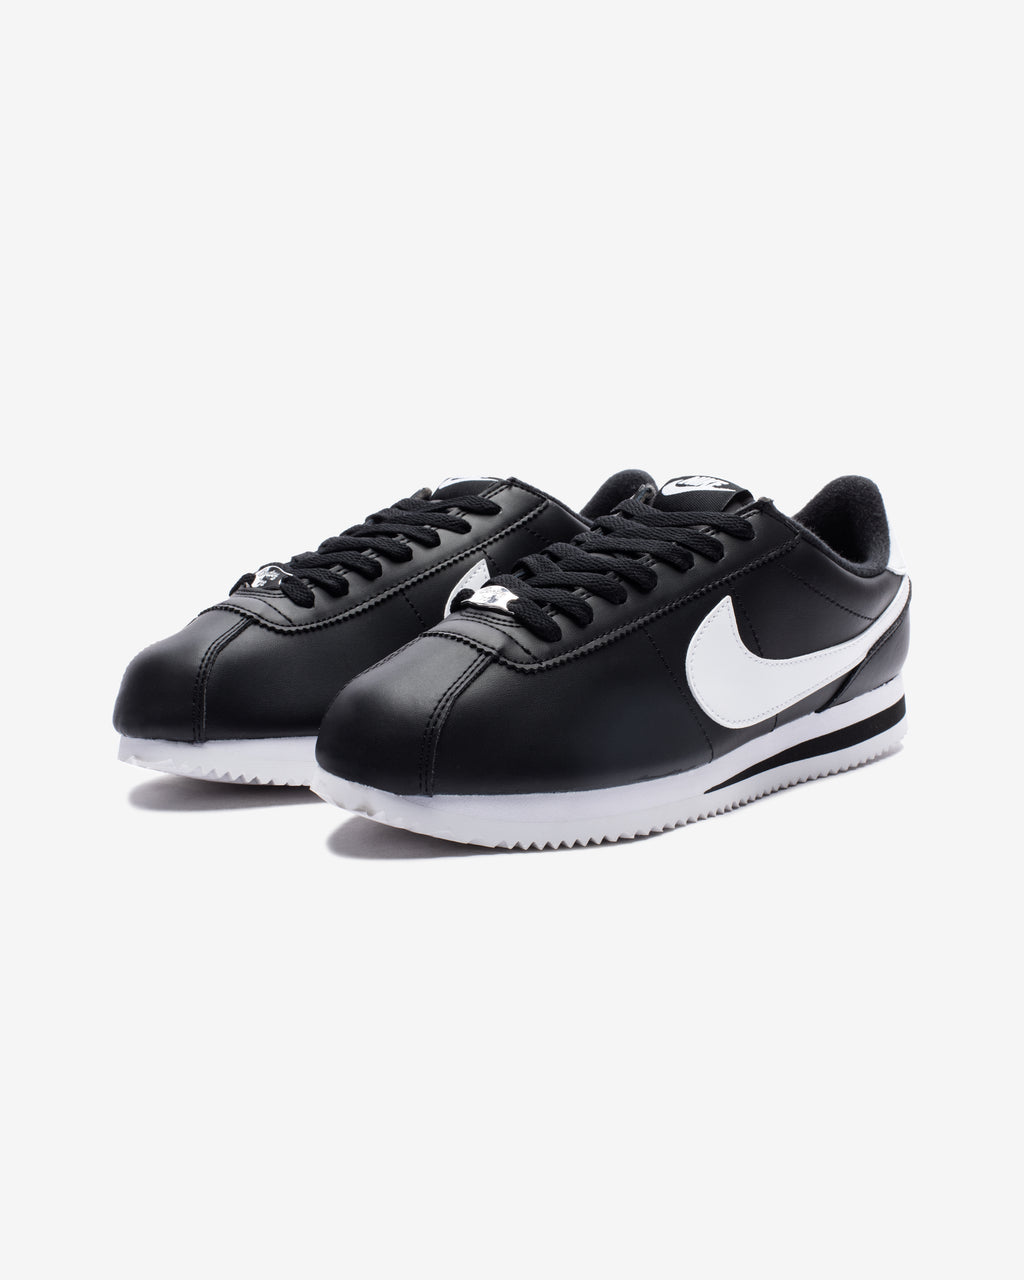 CORTEZ BASIC - BLACK/ WHITE/ METALLICSILVER